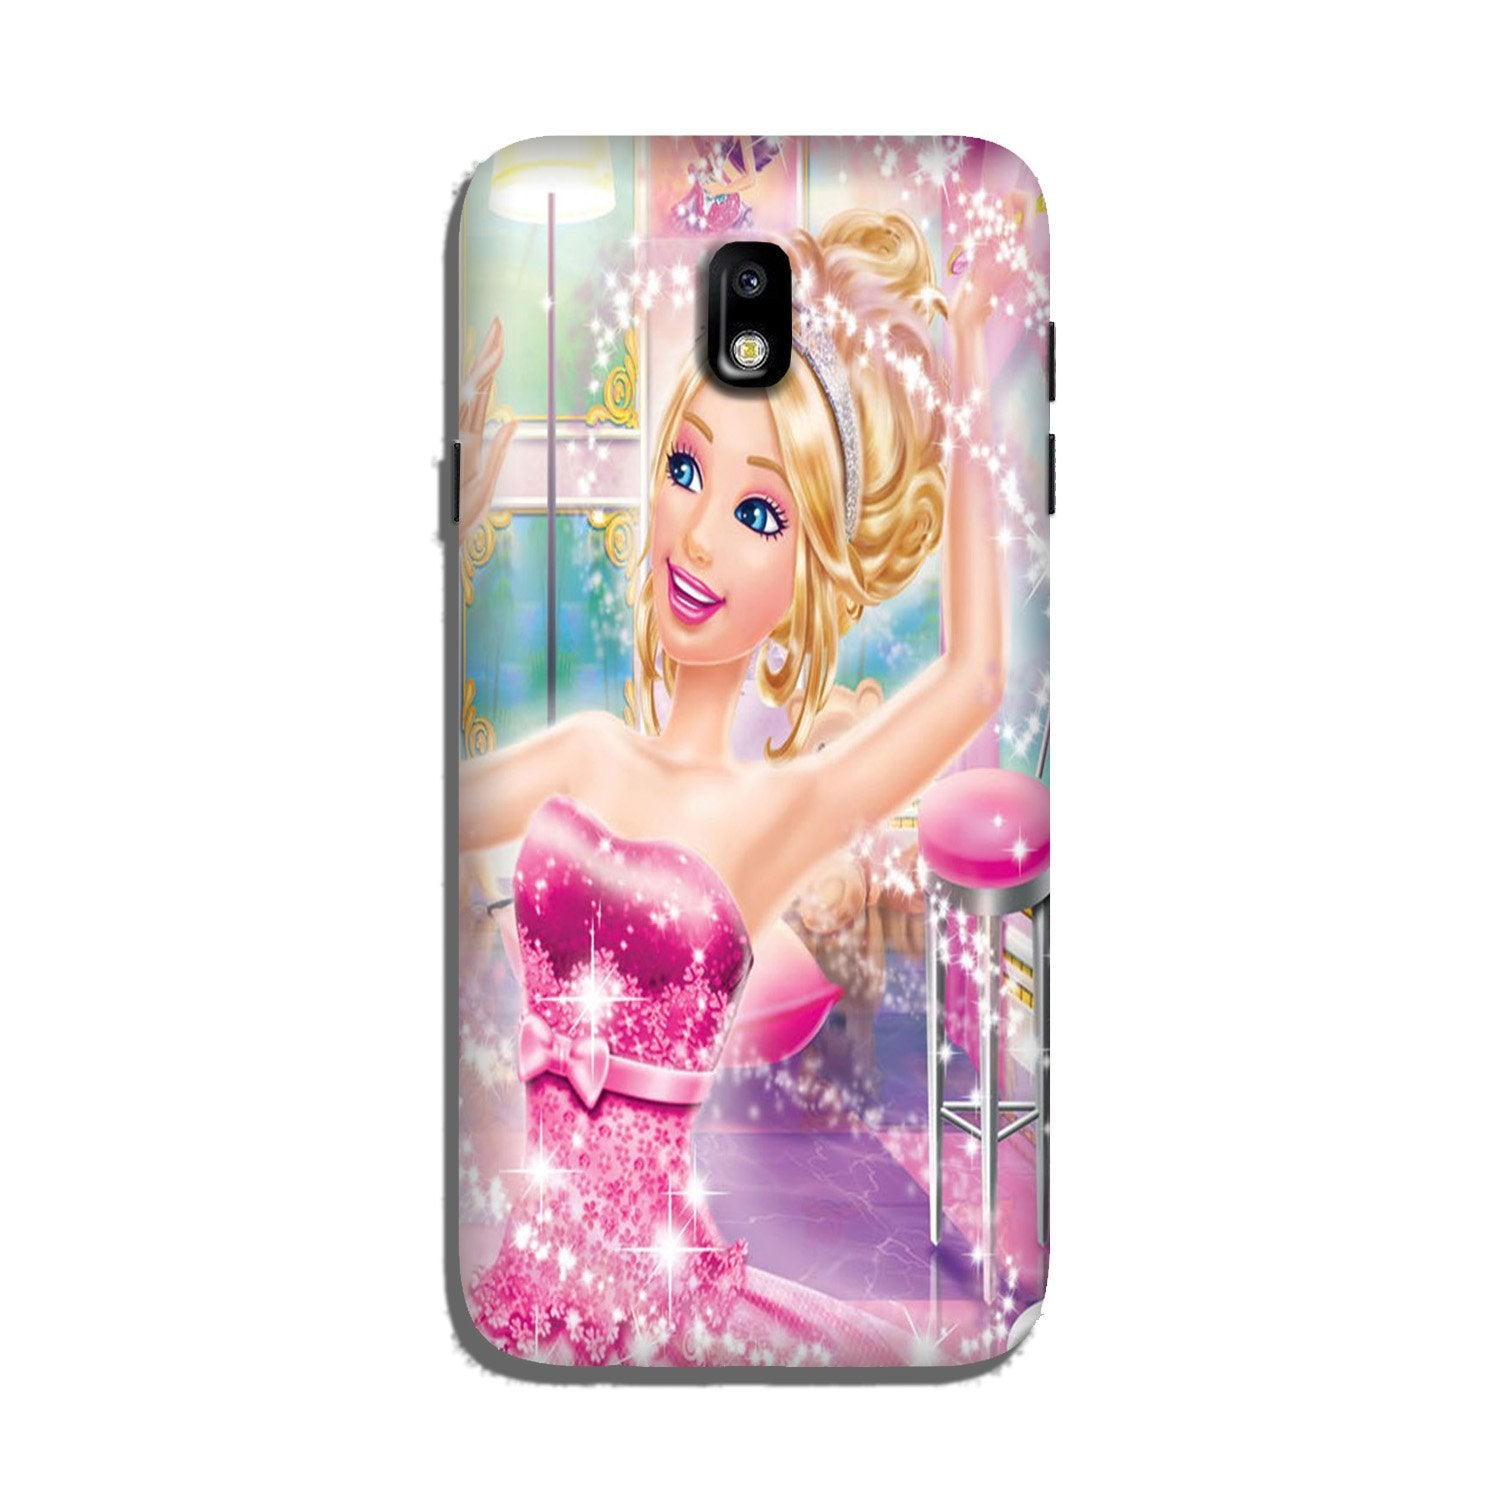 Princesses Case for Galaxy J5 Pro